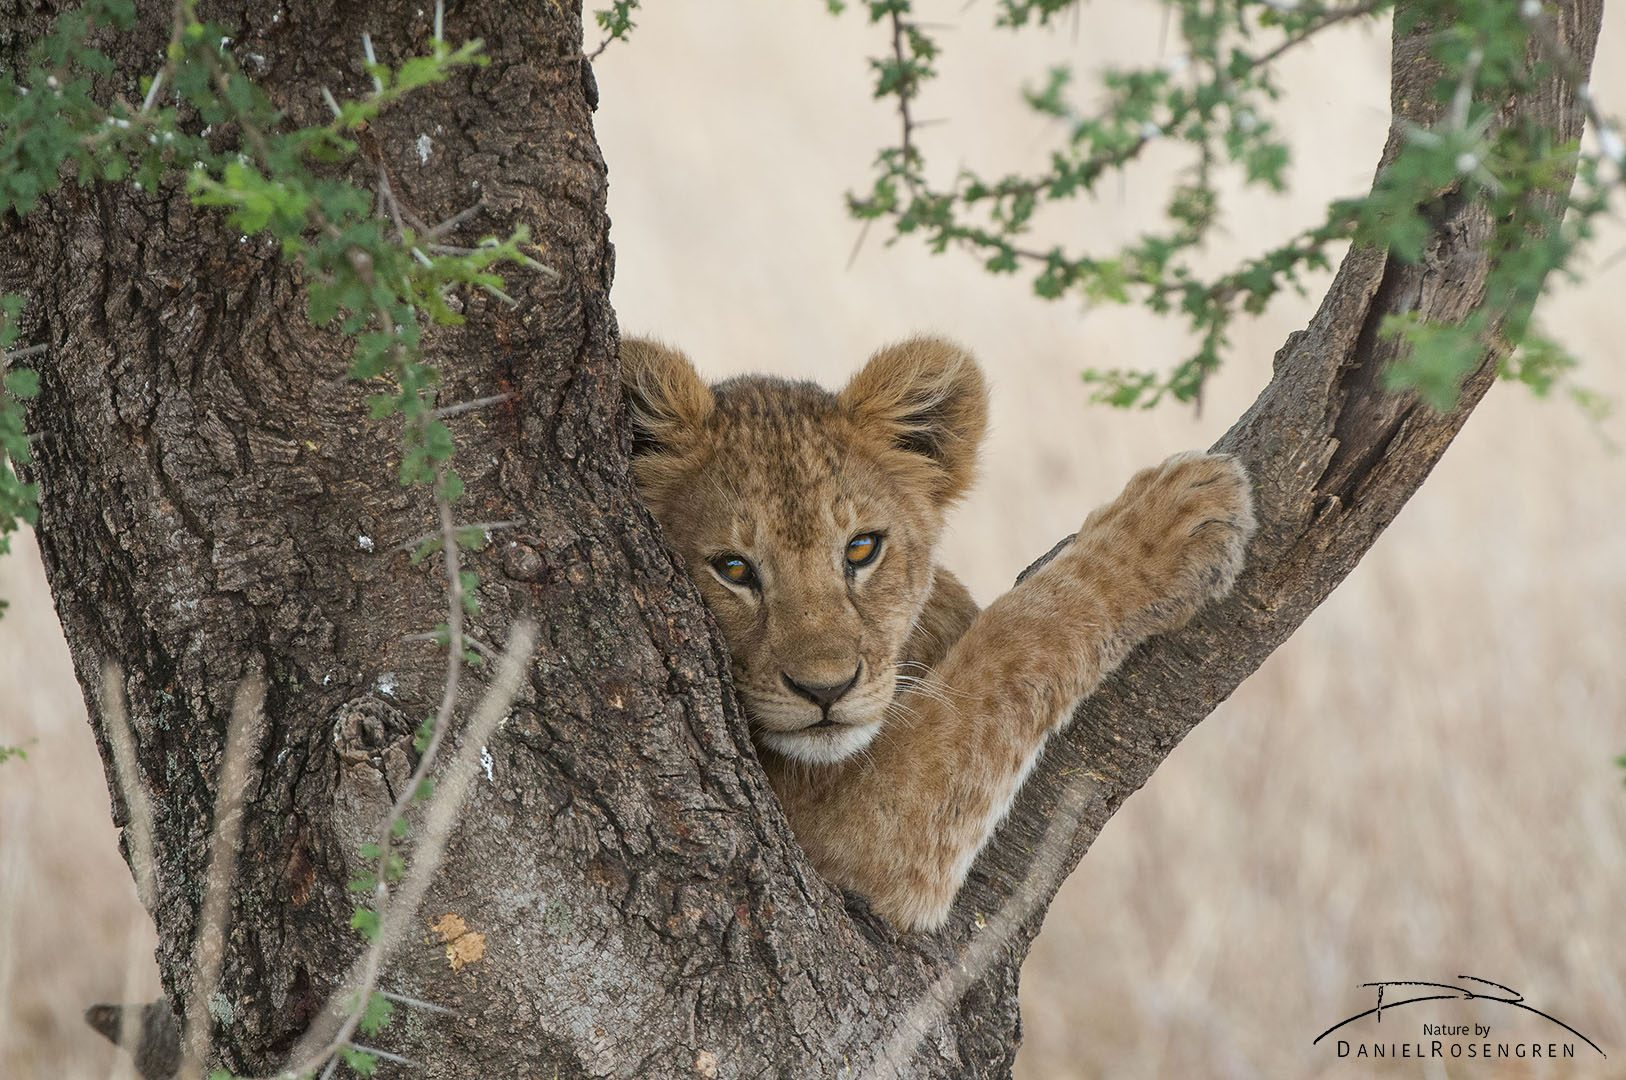 A lion cub posing in a tree.  © Daniel Rosengren